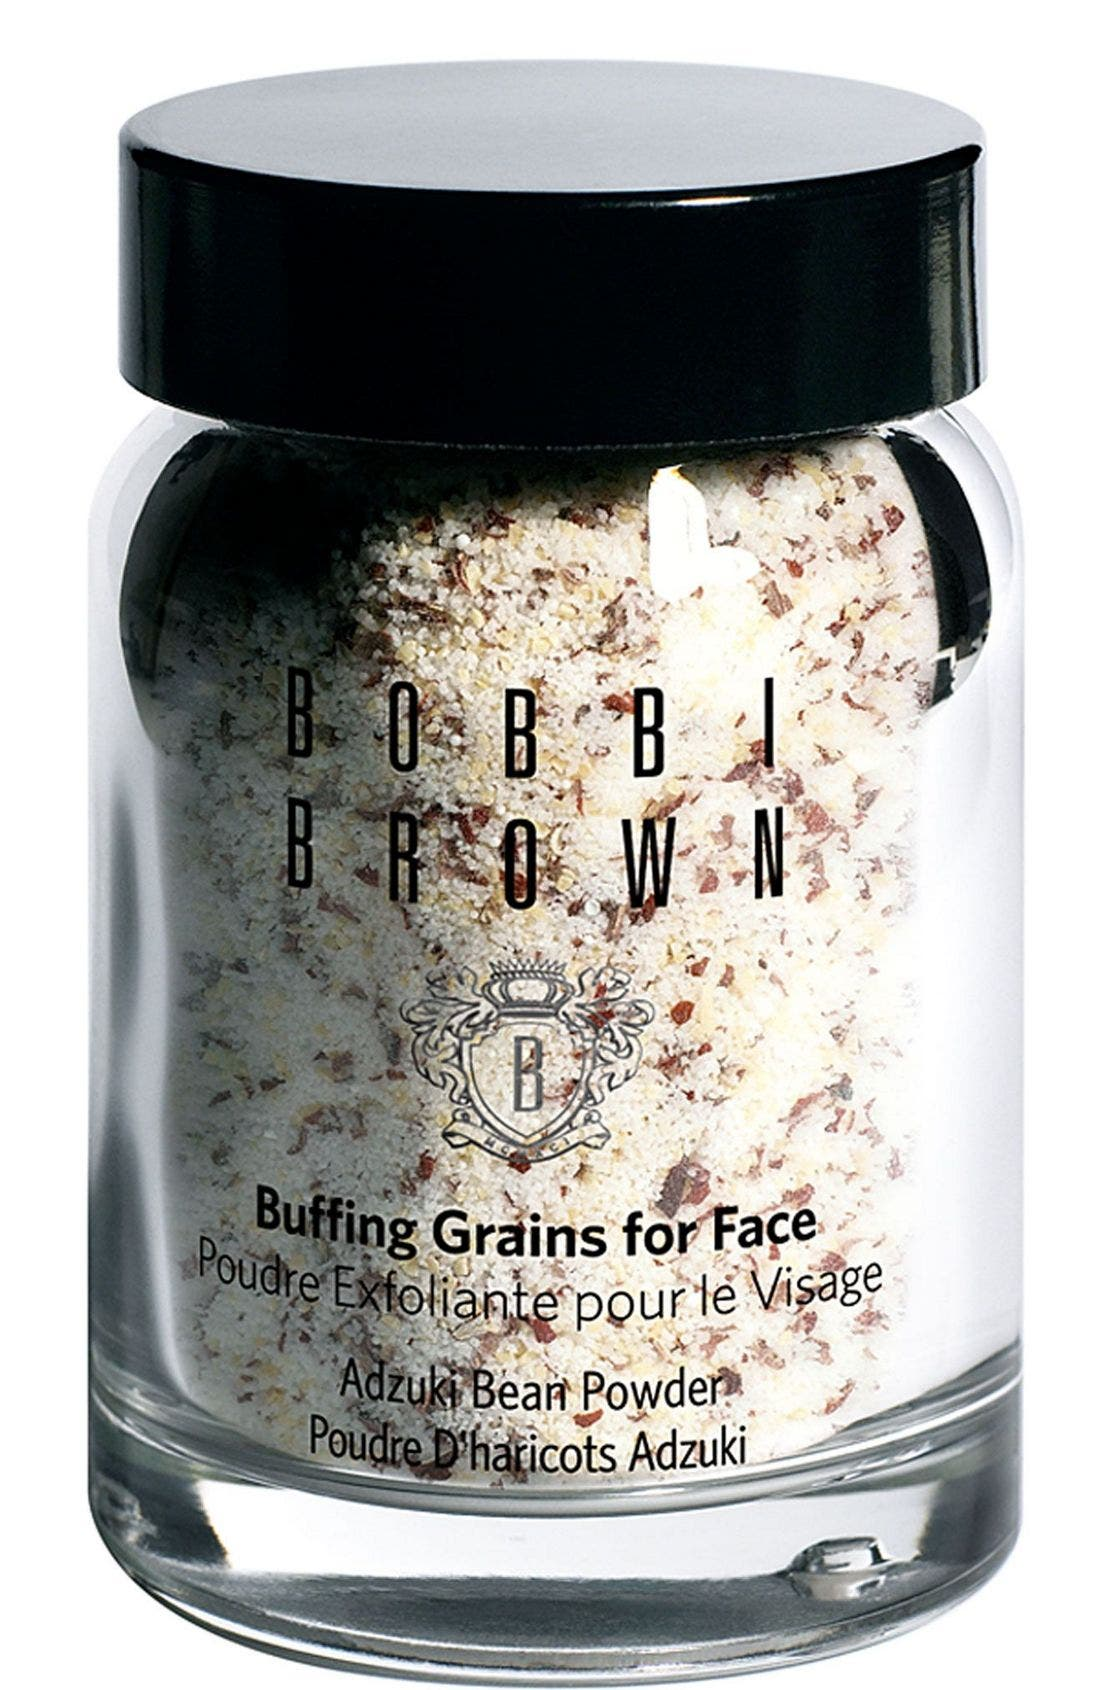 Buffing Grains for Face, Main, color, NO COLOR